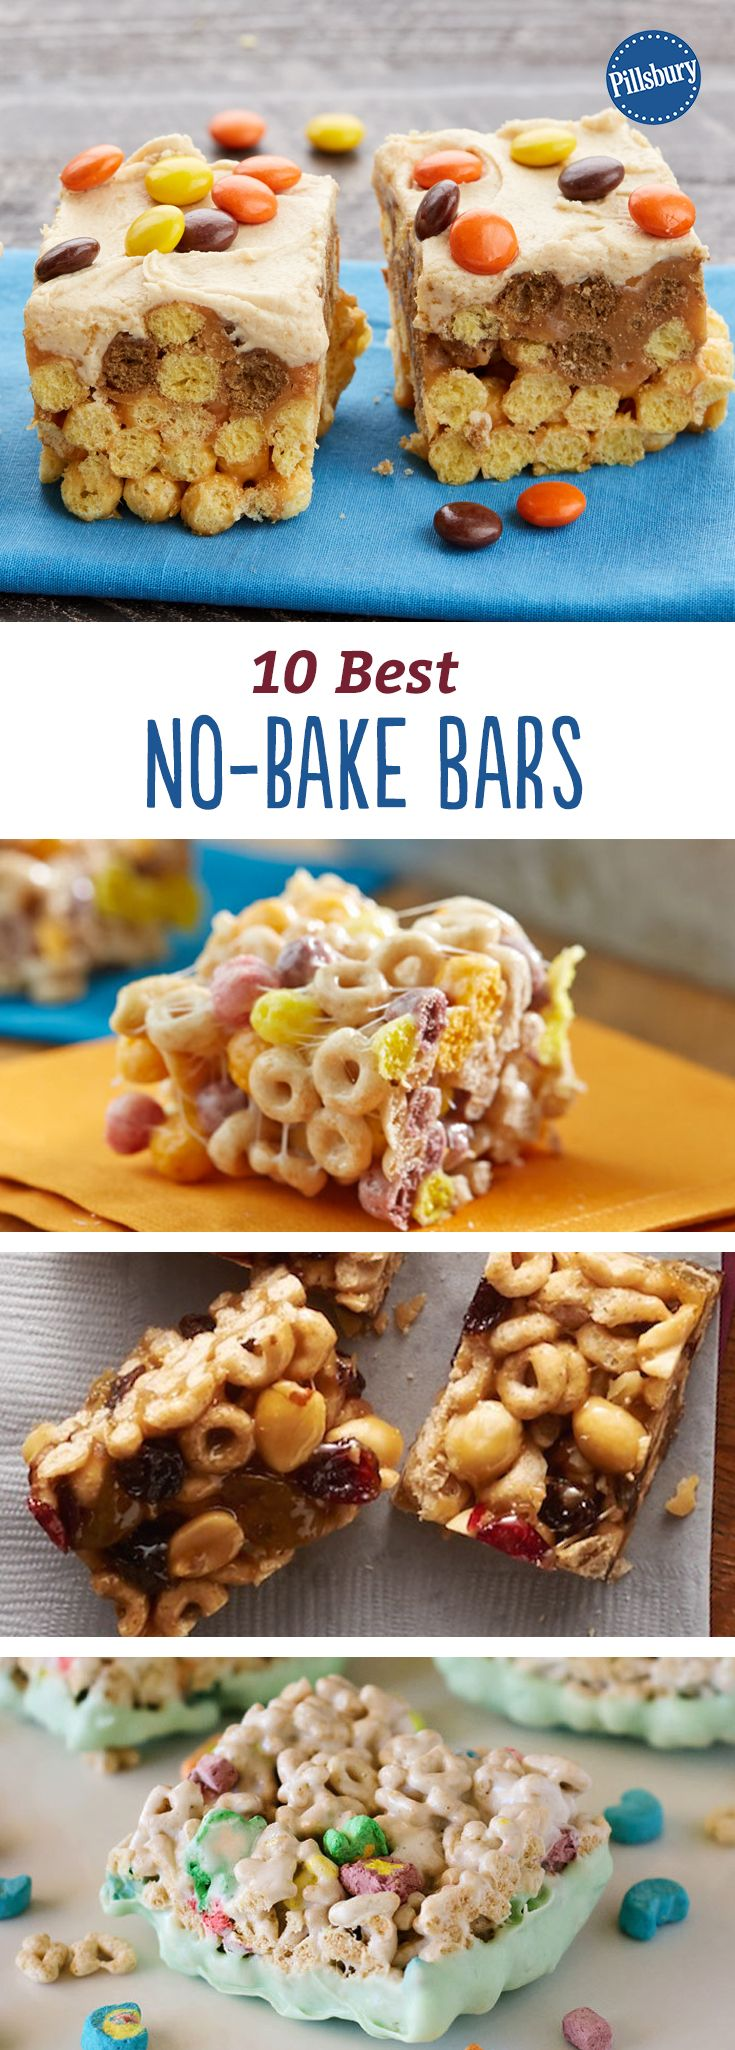 10 Best No-Bake Bars: Turn your favorite cereal into a no-bake bar. Make a batch this weekend and you'll have them on hand for a quick breakfast or after-school snack all week long.